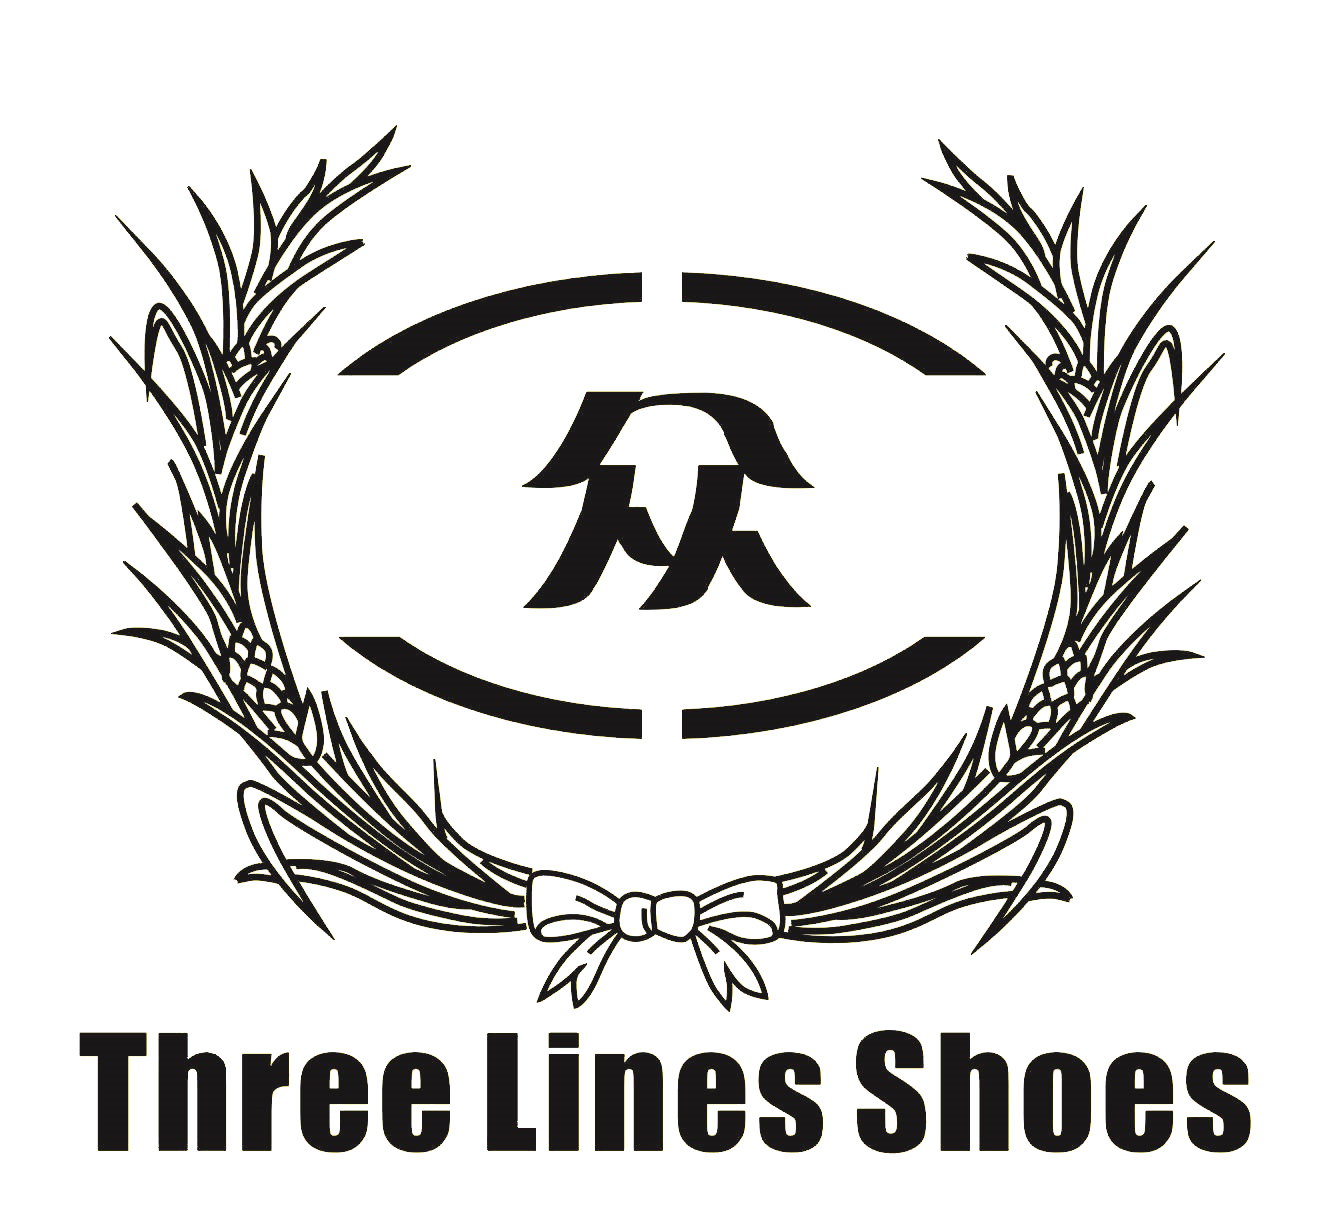 TAIZHOU THREE LINES SHOES CO., LTD